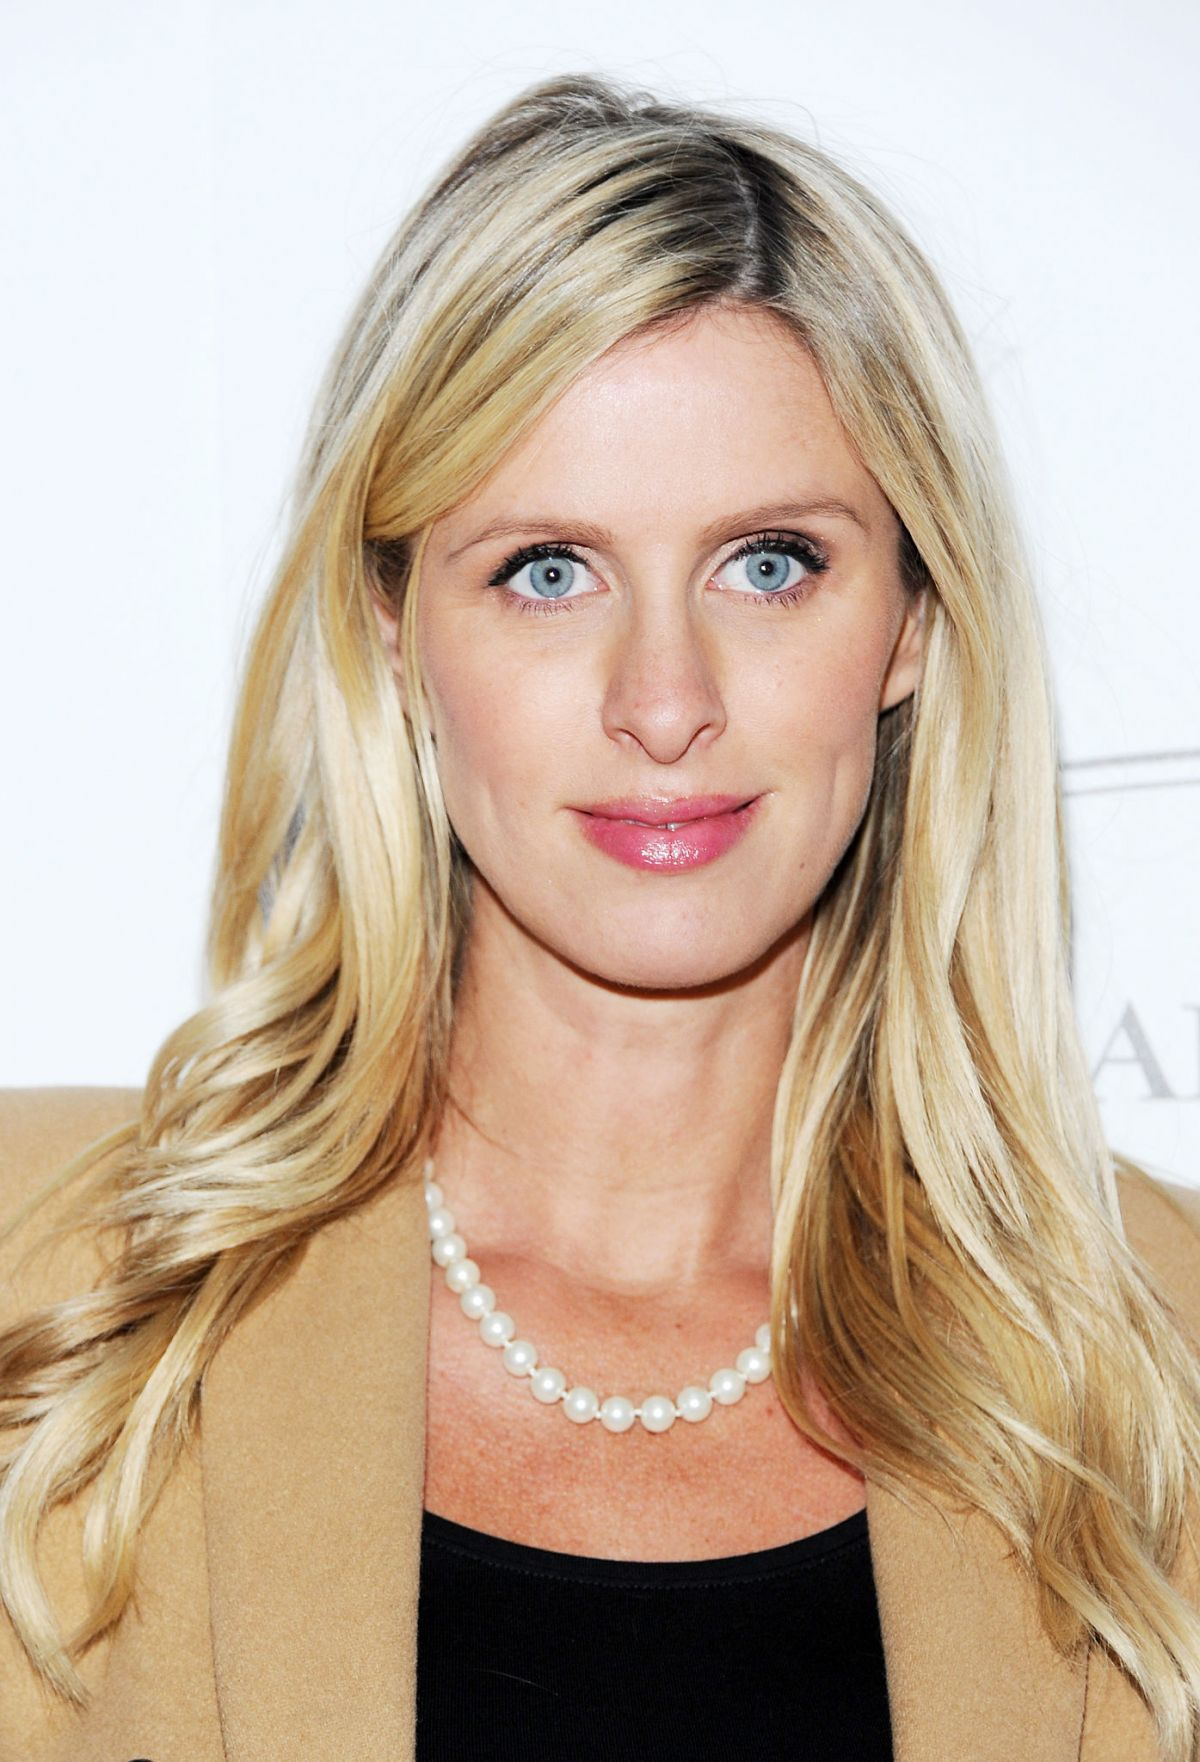 Gallery Nicky Hilton  nude (72 pics), YouTube, in bikini